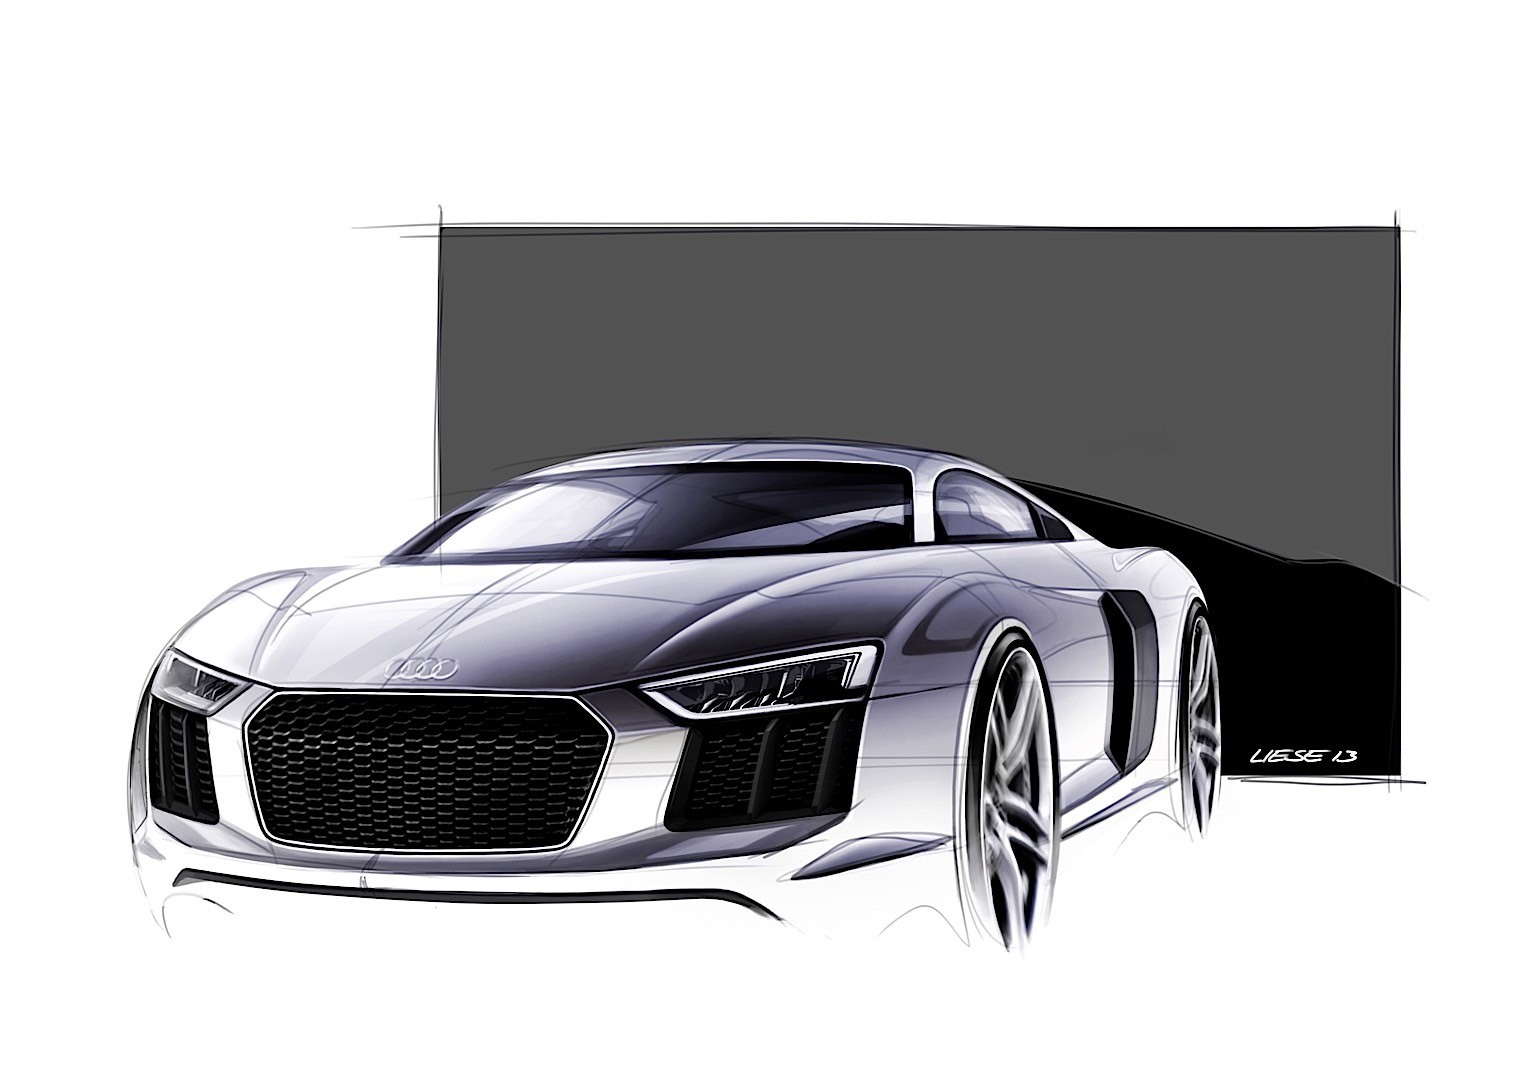 Hyper Sport 2017 >> Audi Ponders Launching A Hypercar, Won't Share Parts With Lamborghini - autoevolution